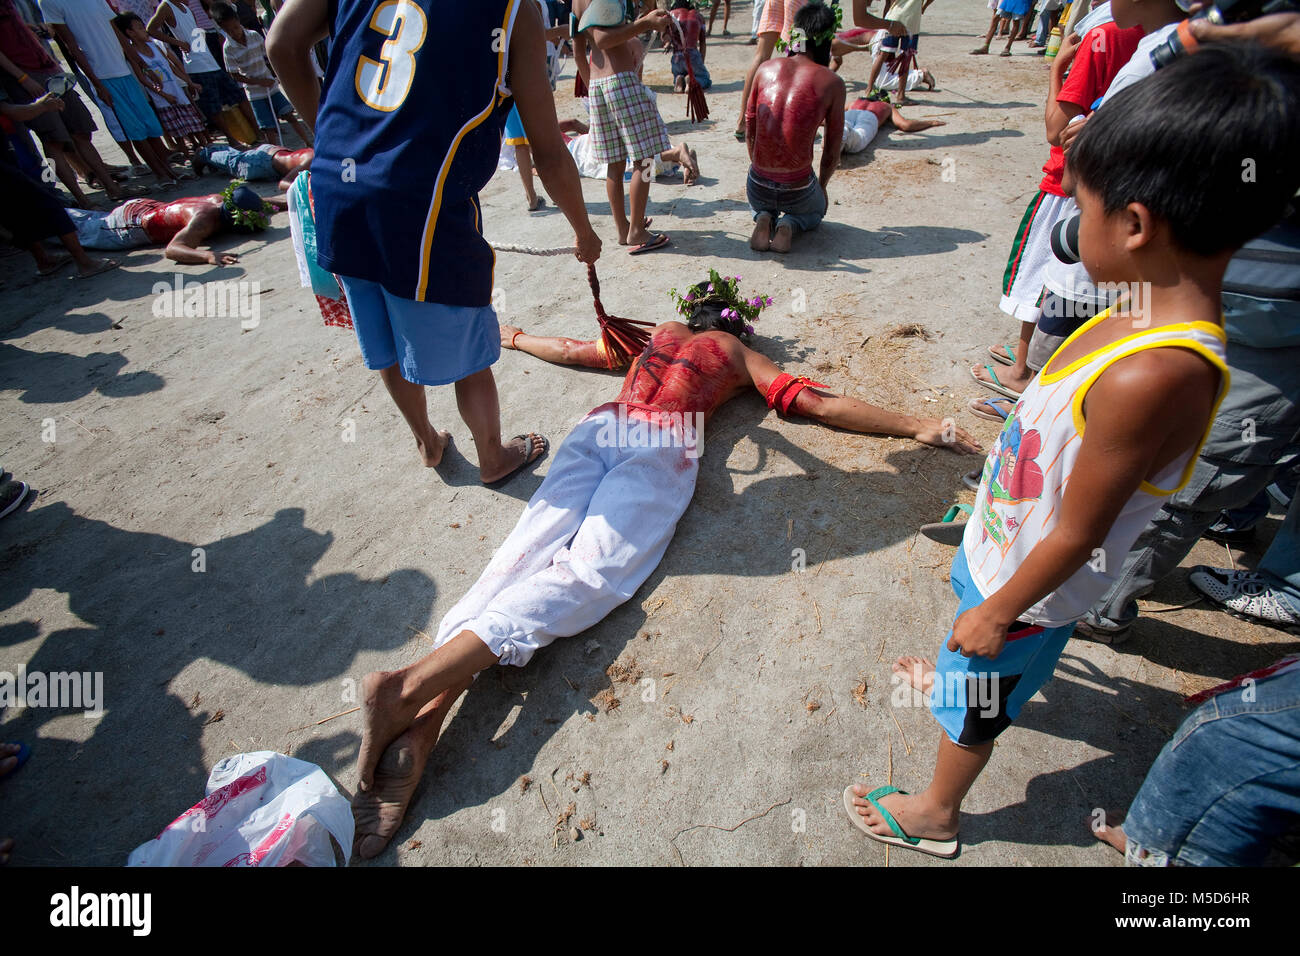 Filipino beats a flagellant exhausted on the ground, religious ritual on Good Friday, public self-flagellation of - Stock Image